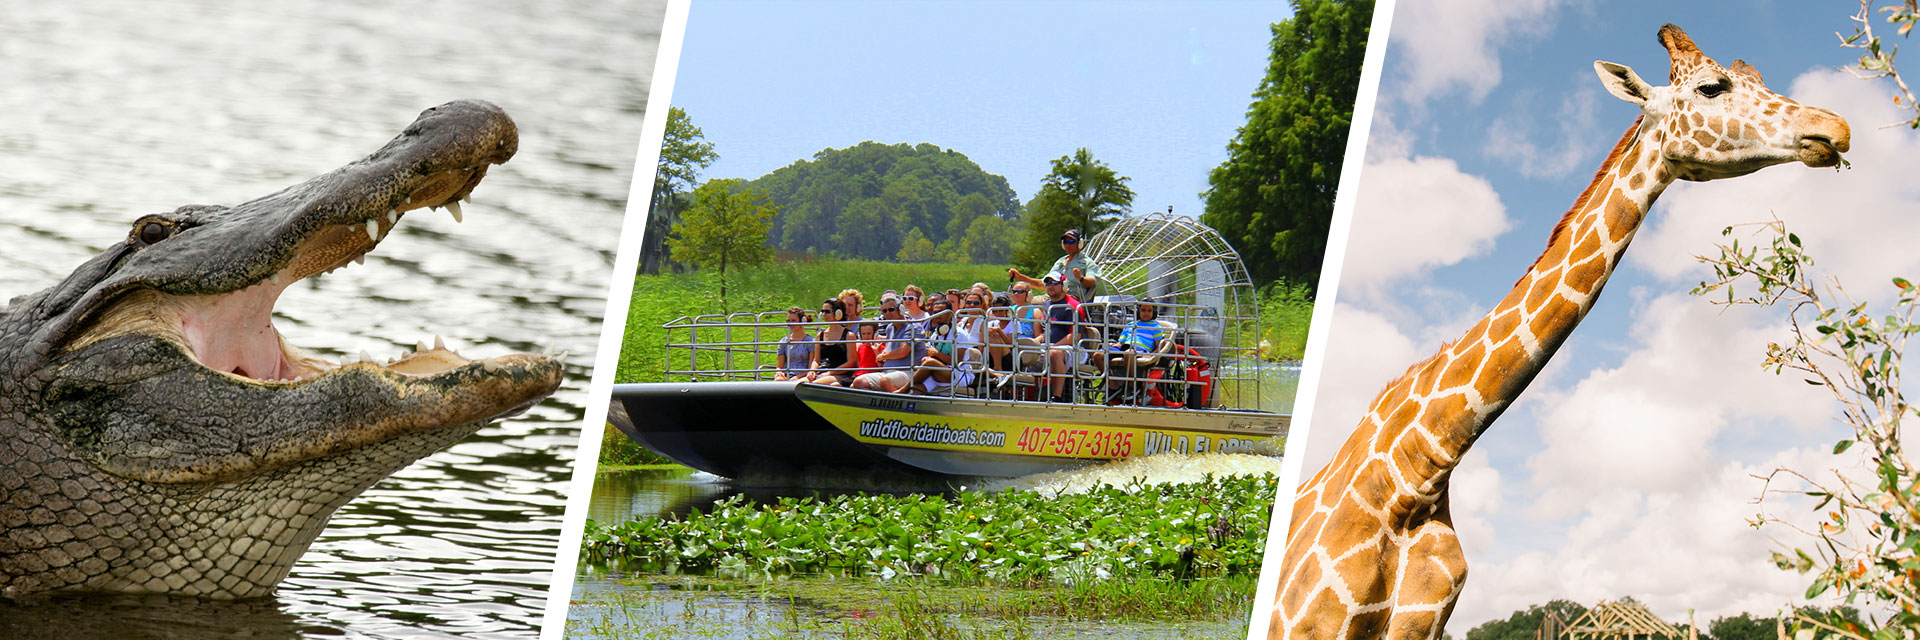 Wild Florida Everglades Wildlife Park Amp Airboat Rides